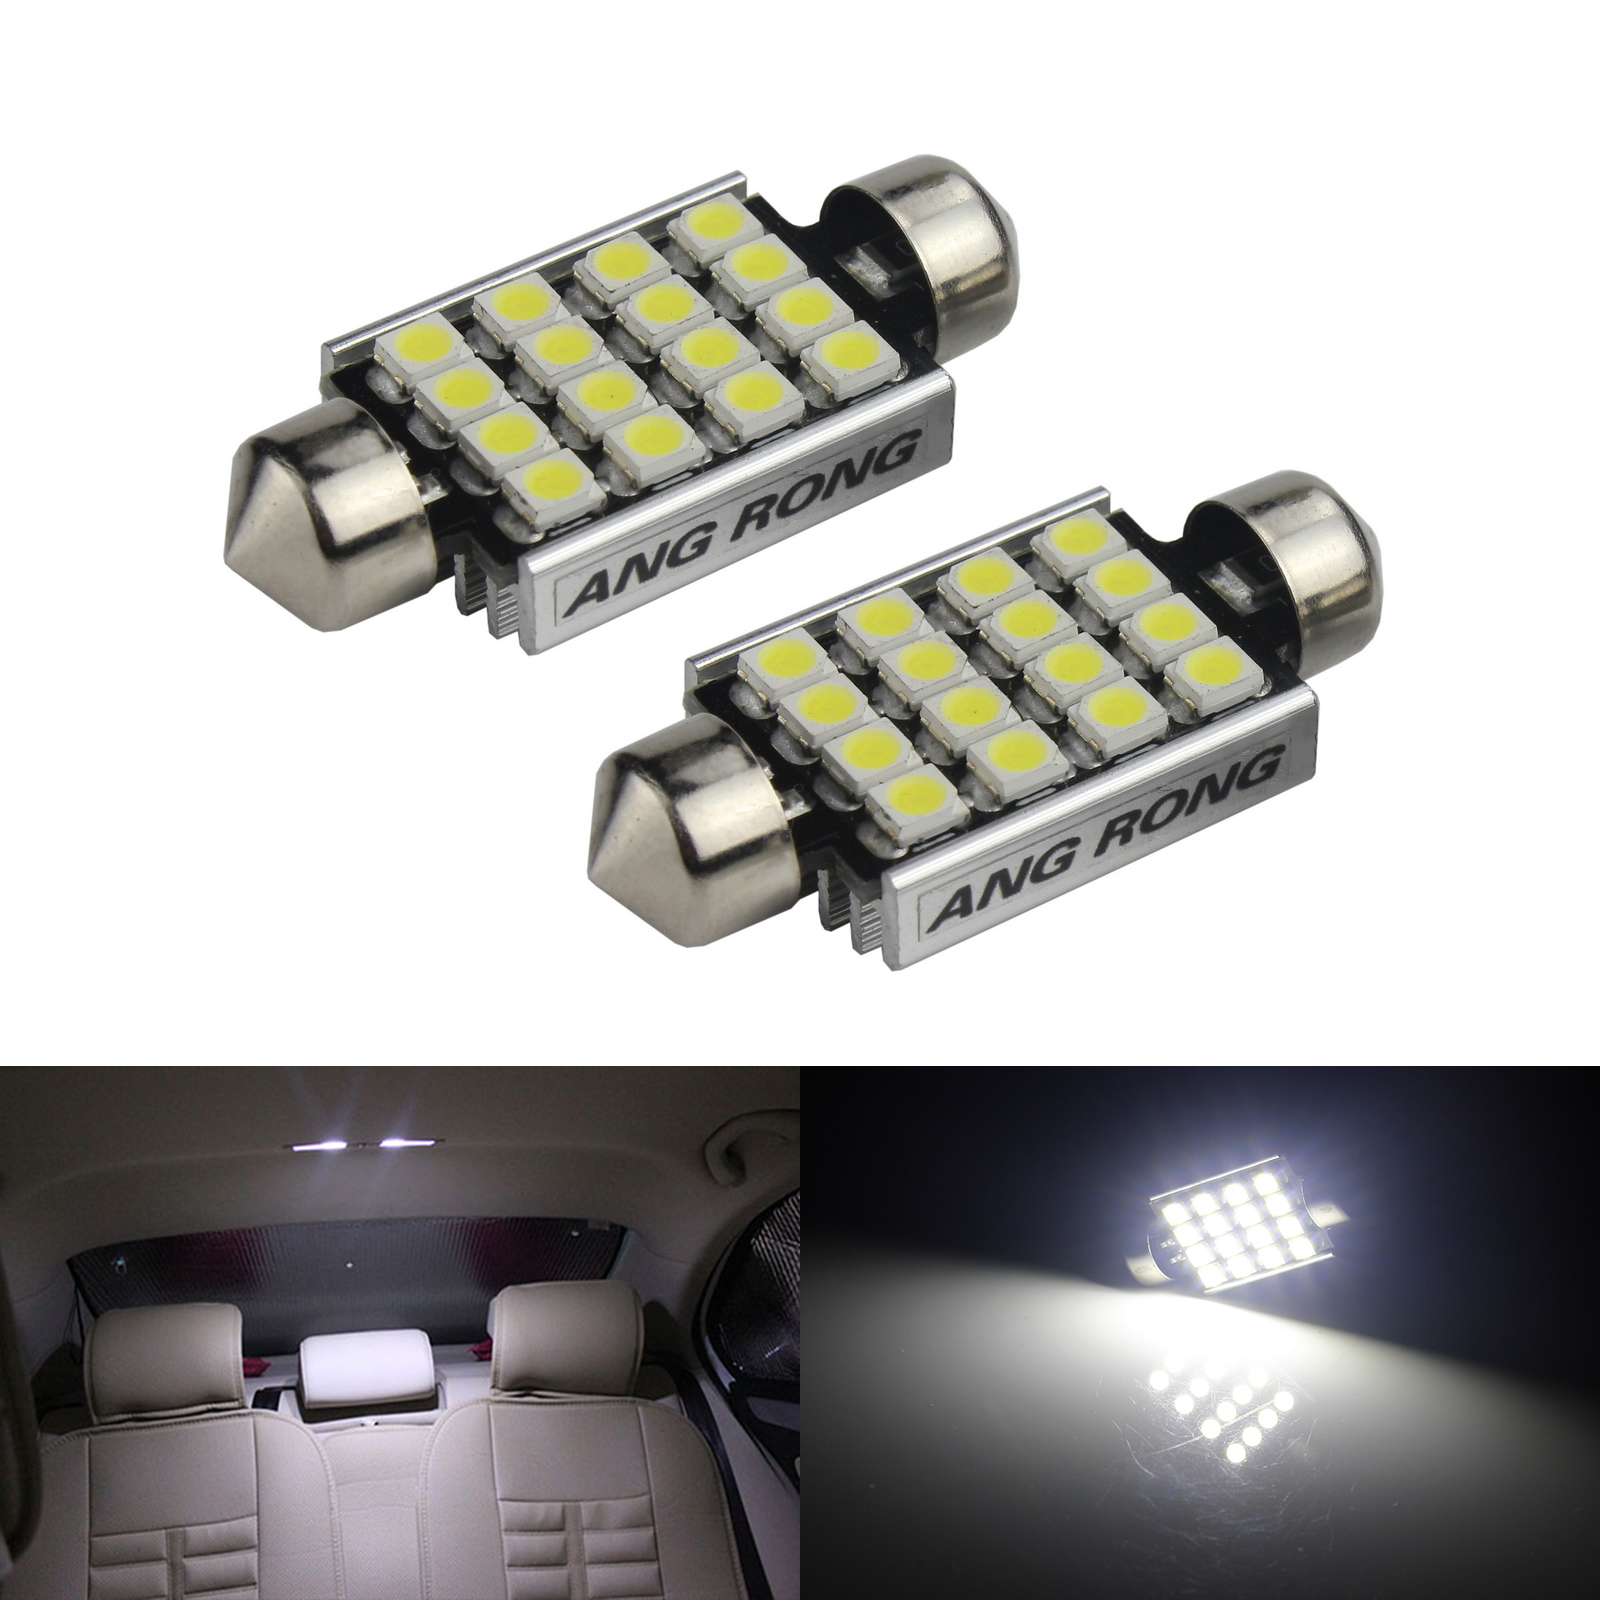 ANGRONG 2x Canbus White <font><b>16</b></font> <font><b>SMD</b></font> LED C5W 239 272 Festoon Bulb REG Number Plate Light For BMW image